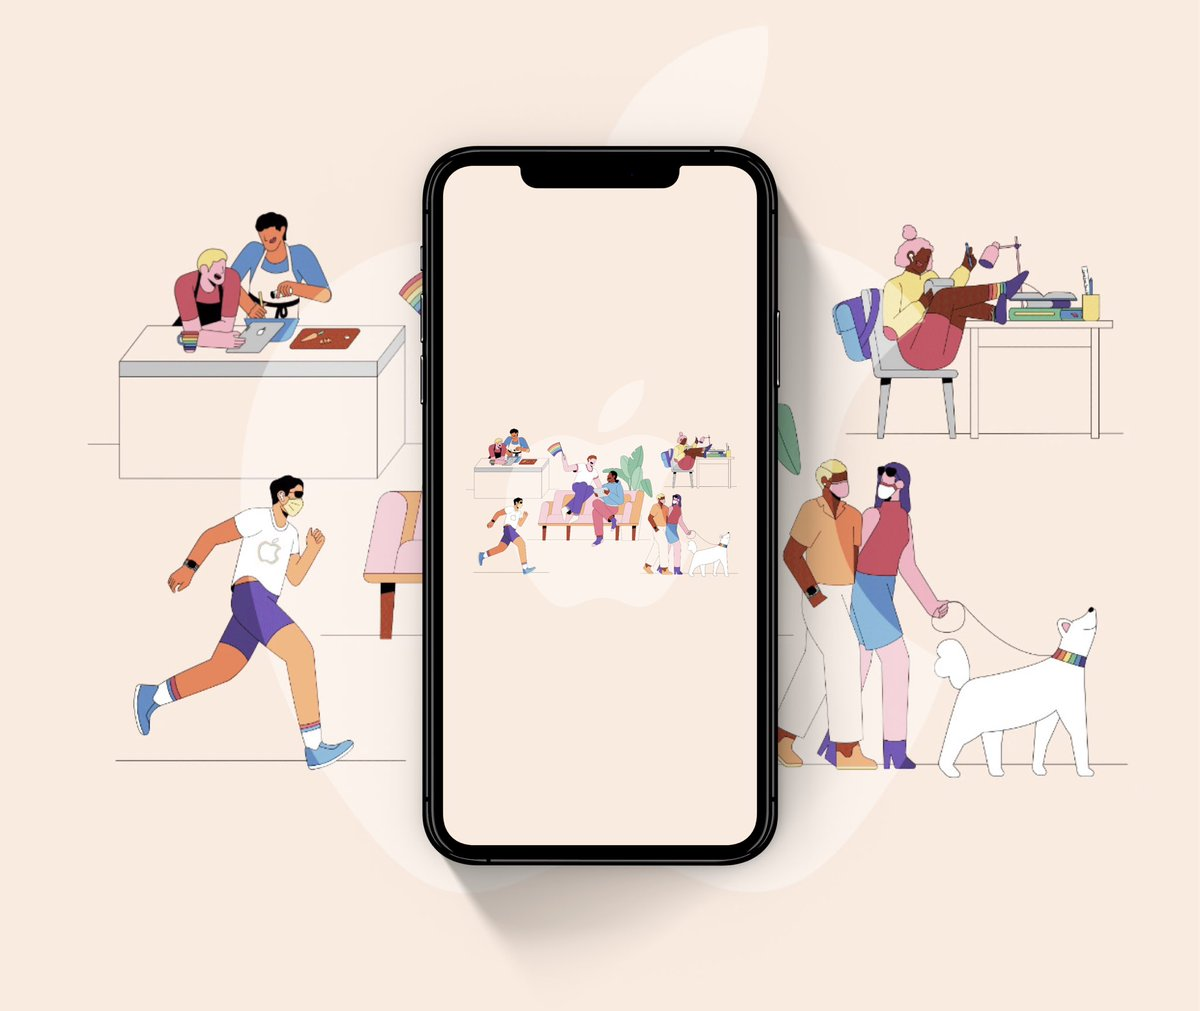 #wallpapers   Apple Pride 2020 Celebrates #wallpaper   - include Blank version   for  - #iPhone11ProMax - #iPhone11Pro - #iPhone11 - #iPhoneXSMAX  - #iPhoneXR - #iPhoneXS  - #iPhoneX - ALL other #iPhone  Download   https://drive.google.com/drive/folders/18up7VdDhRriBhVT-Wn-9LElOybUaVyNl…  By @AR72014pic.twitter.com/ZeafJ39WjX